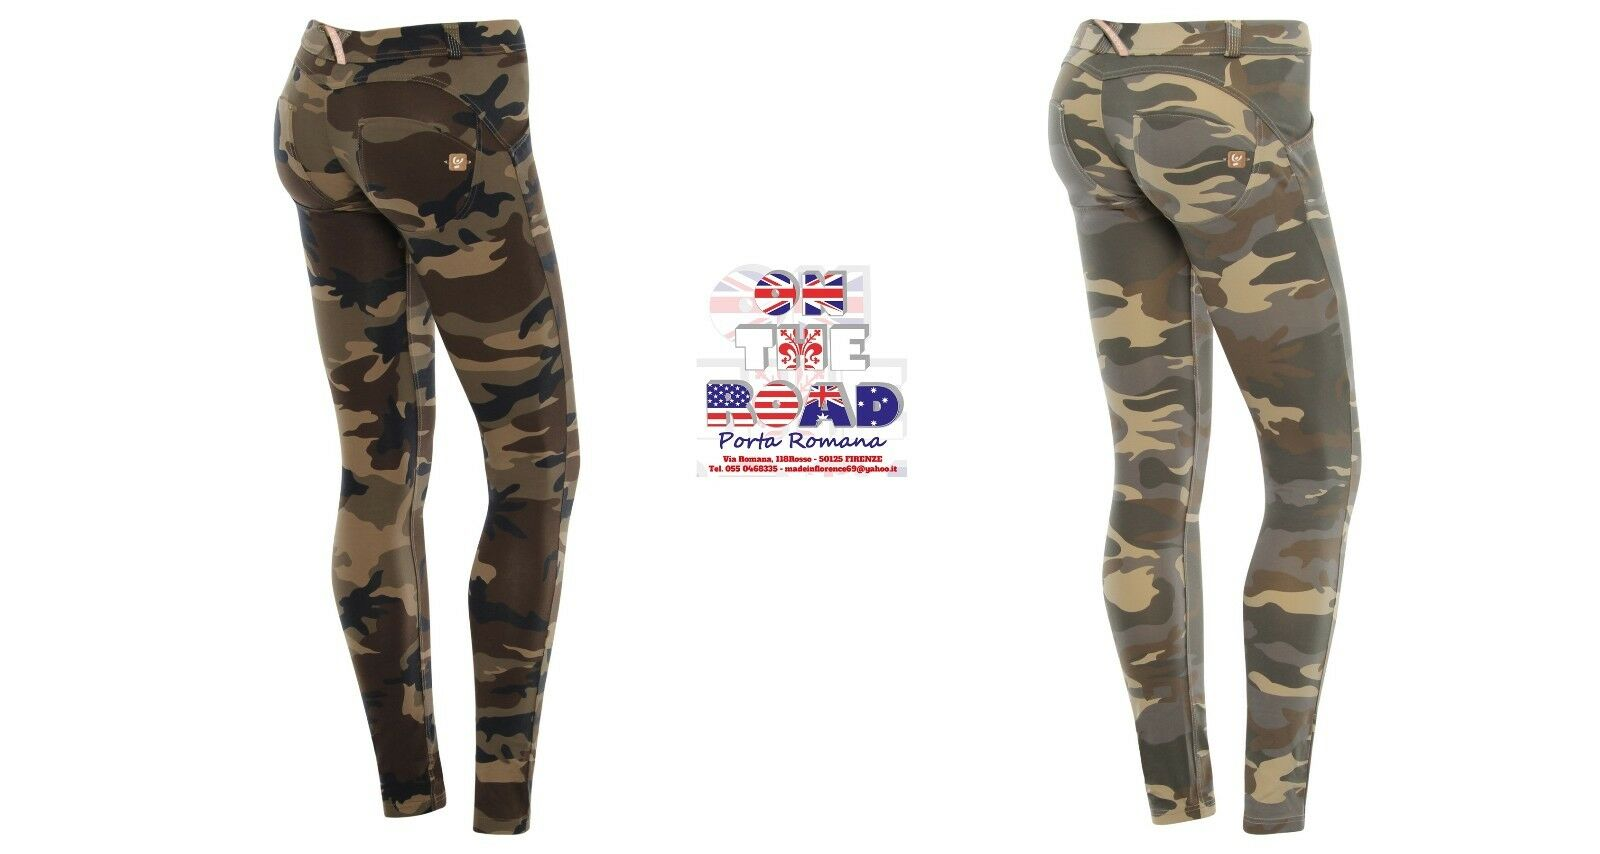 SCONTO 20% FREDDY WR.UP S M L XL PANTALONE COTONE CAMOUFLAGE PUSH UP WRUP1LF04E